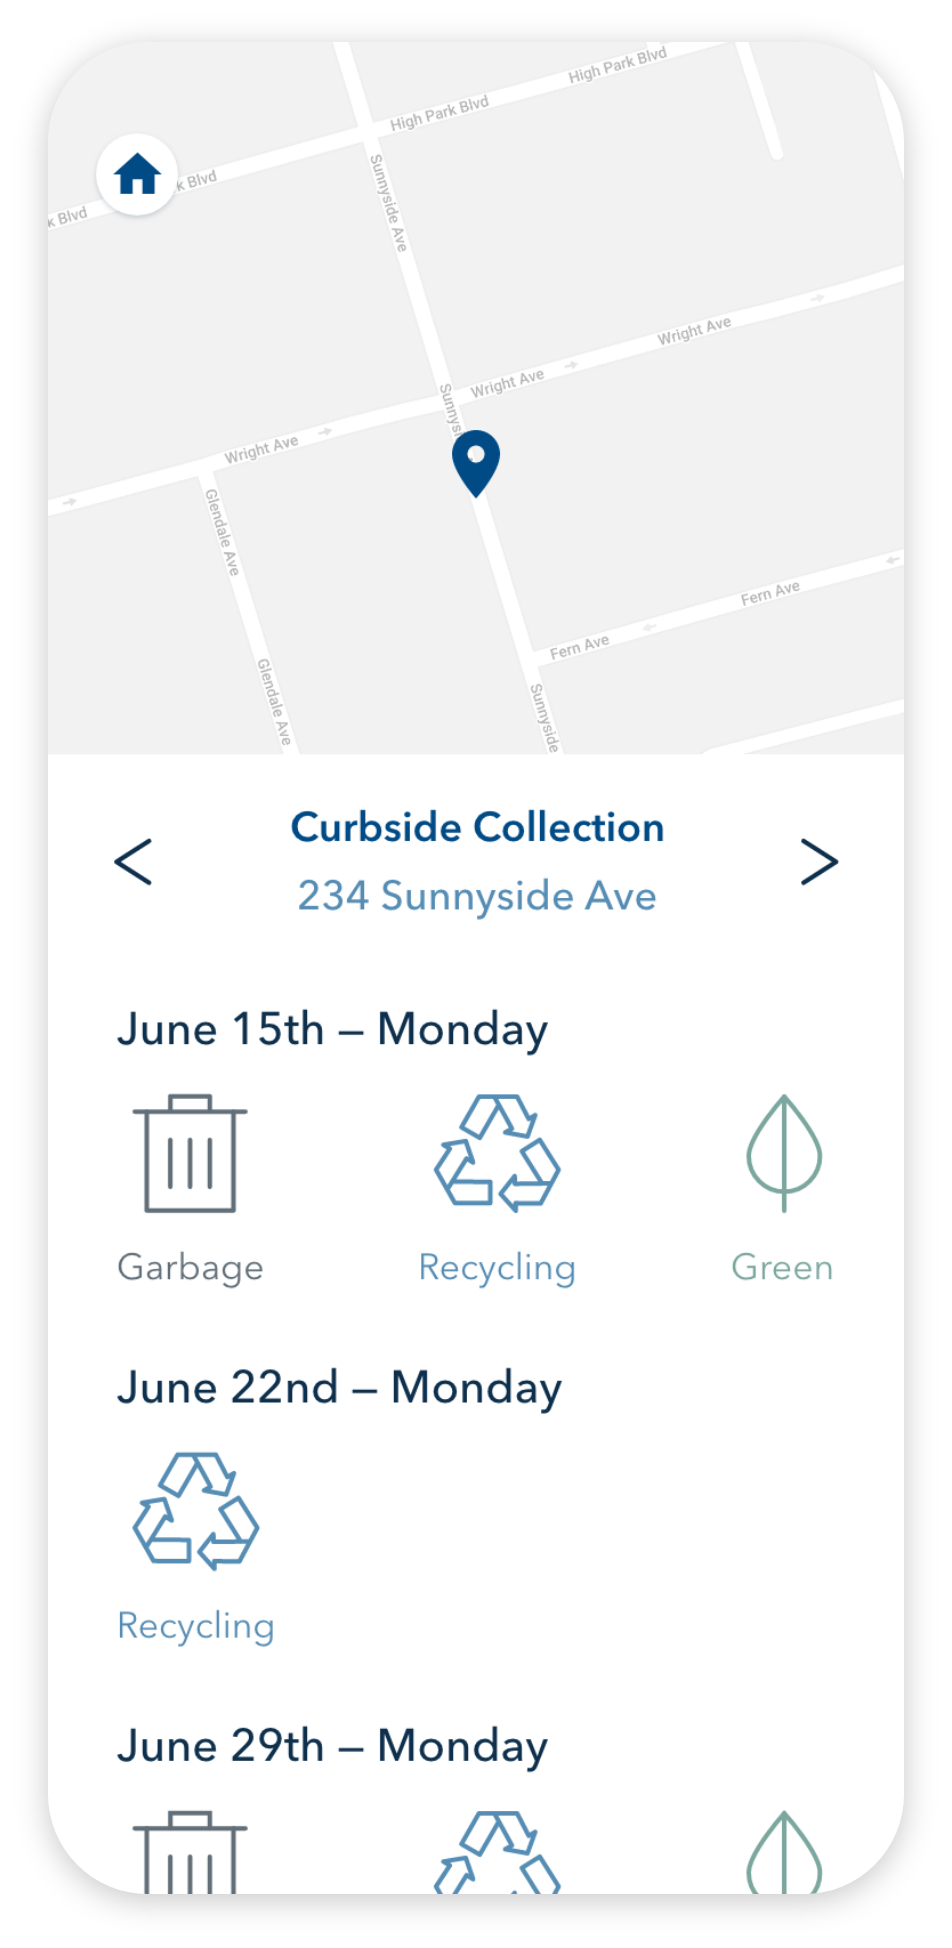 the waste management screen, showing the map and curbside collection schedule